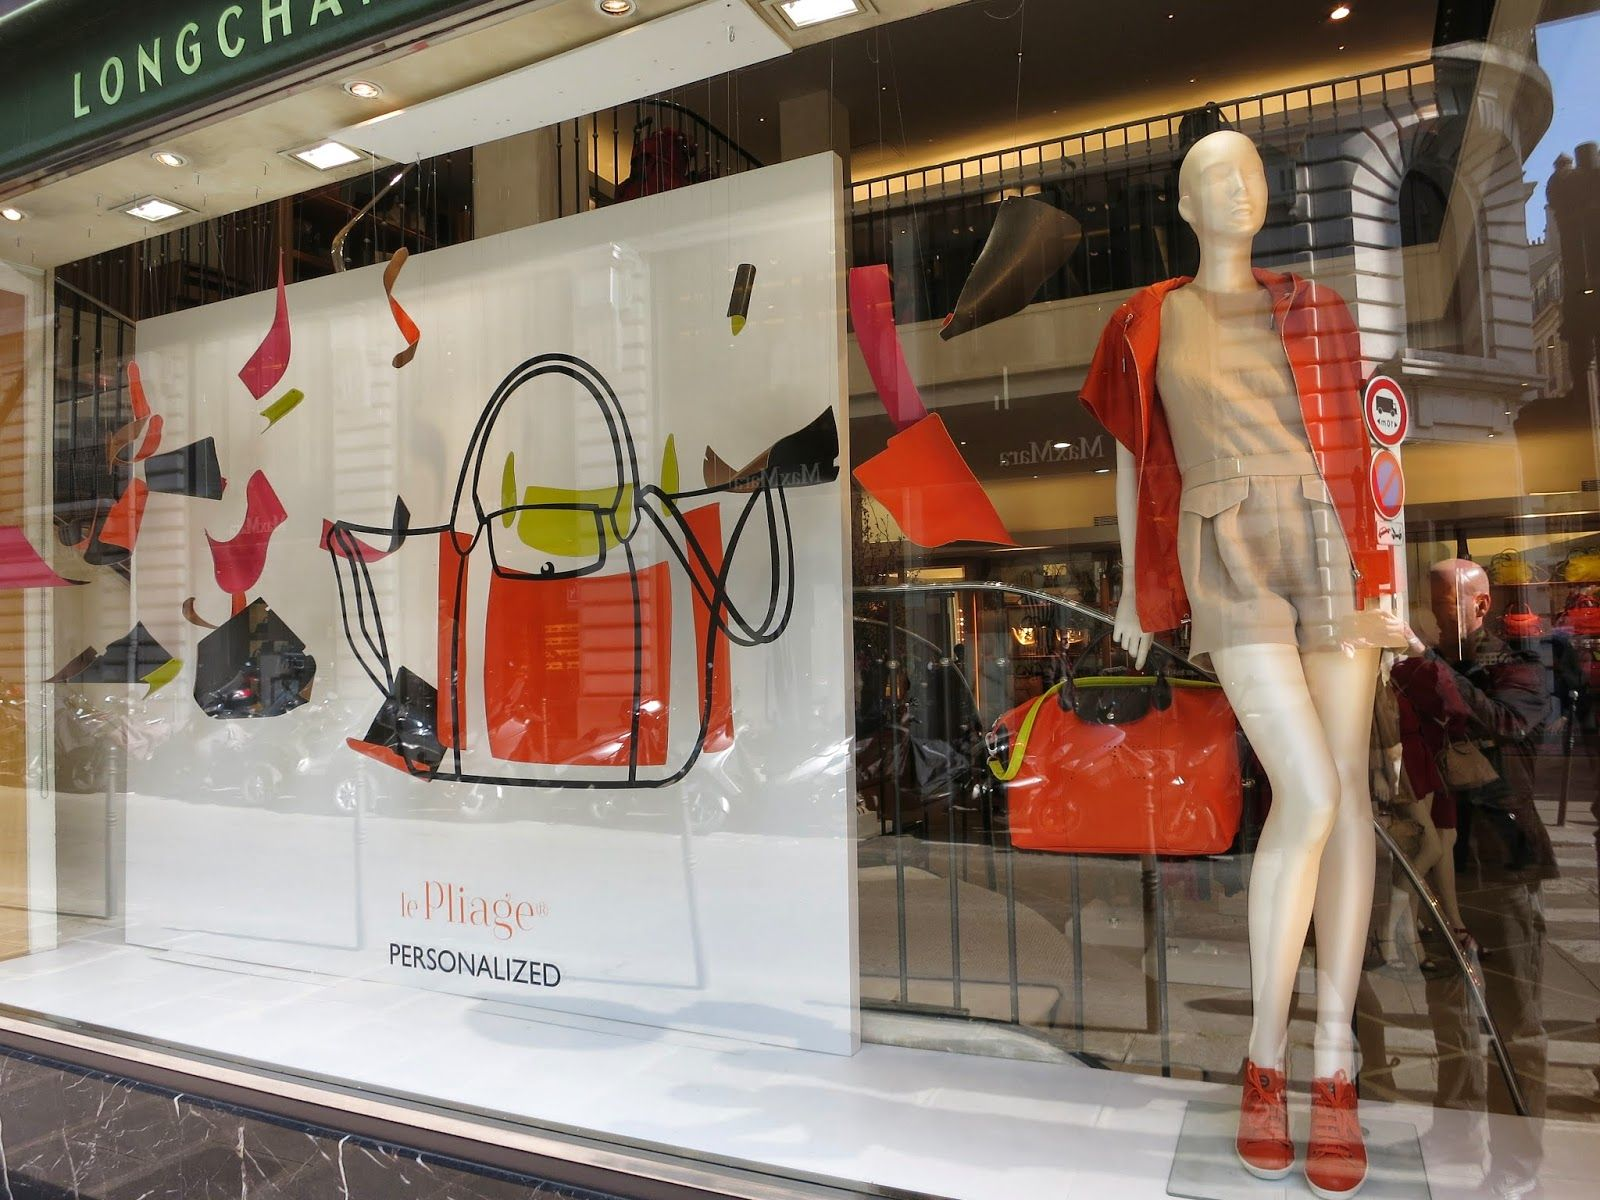 longchamp paris longchamp visual merchandising and window displays. Black Bedroom Furniture Sets. Home Design Ideas